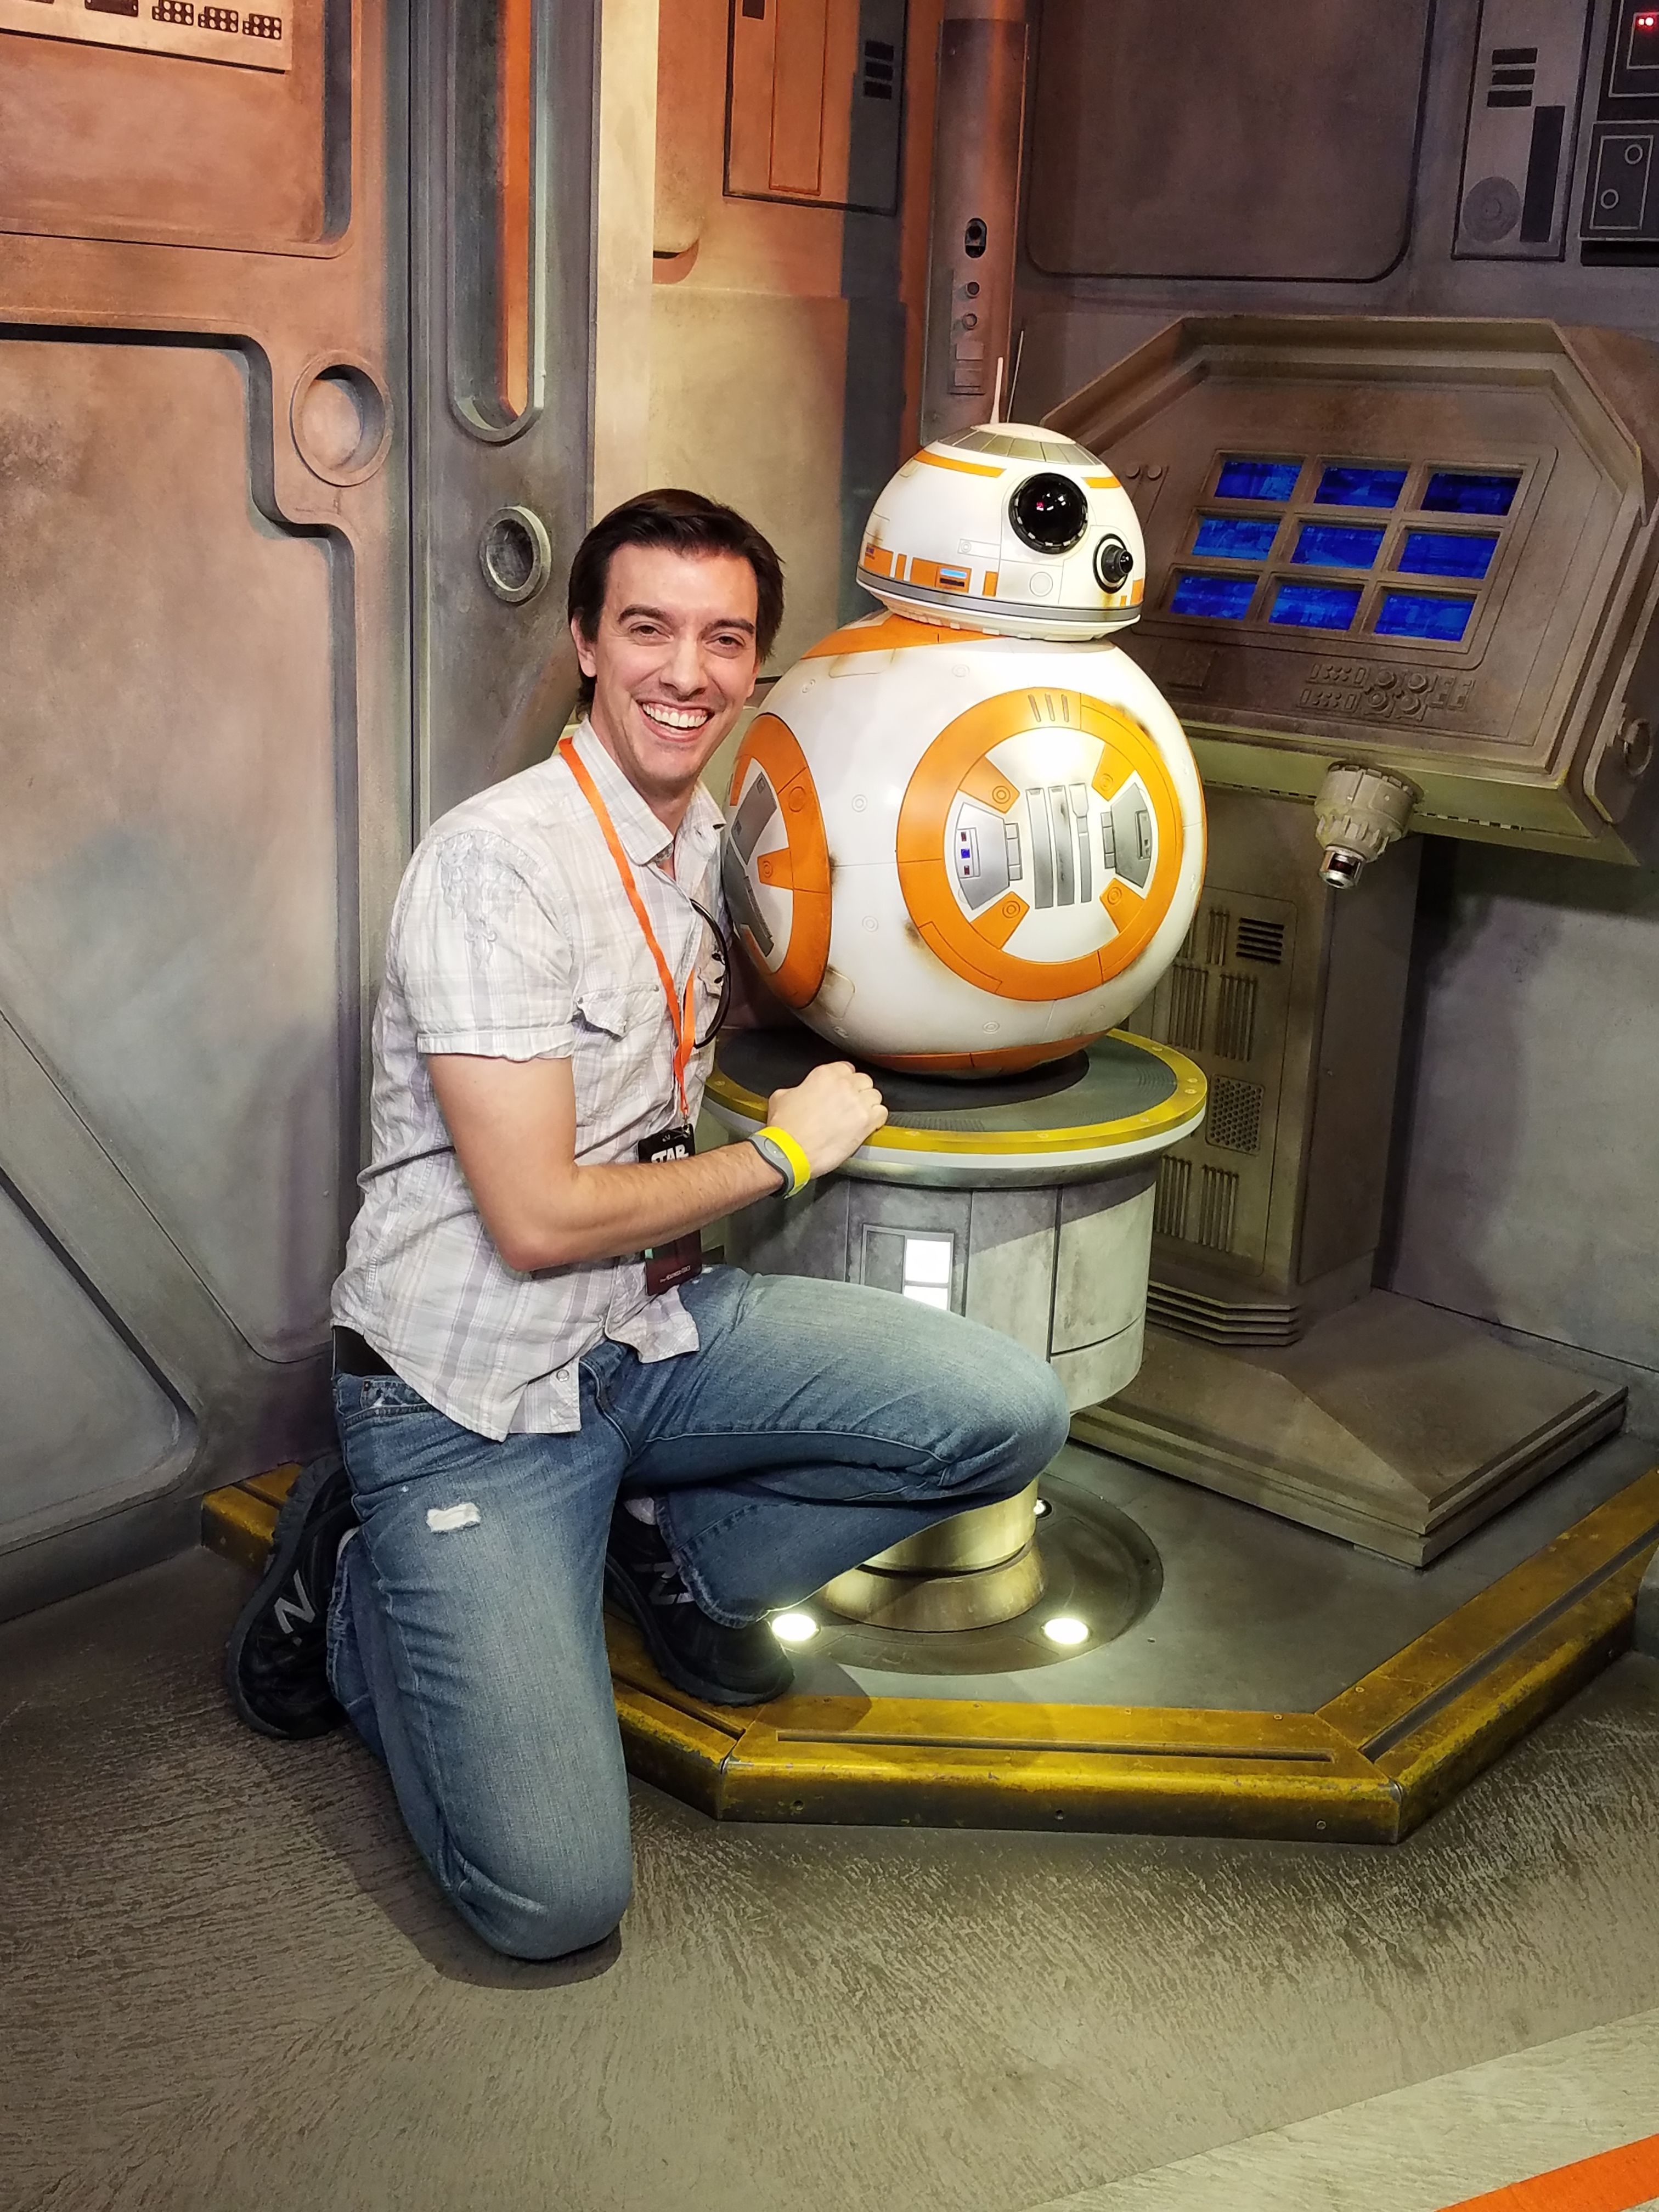 Disney's Hollywood Studios Star Wars Tour Is for the Fans